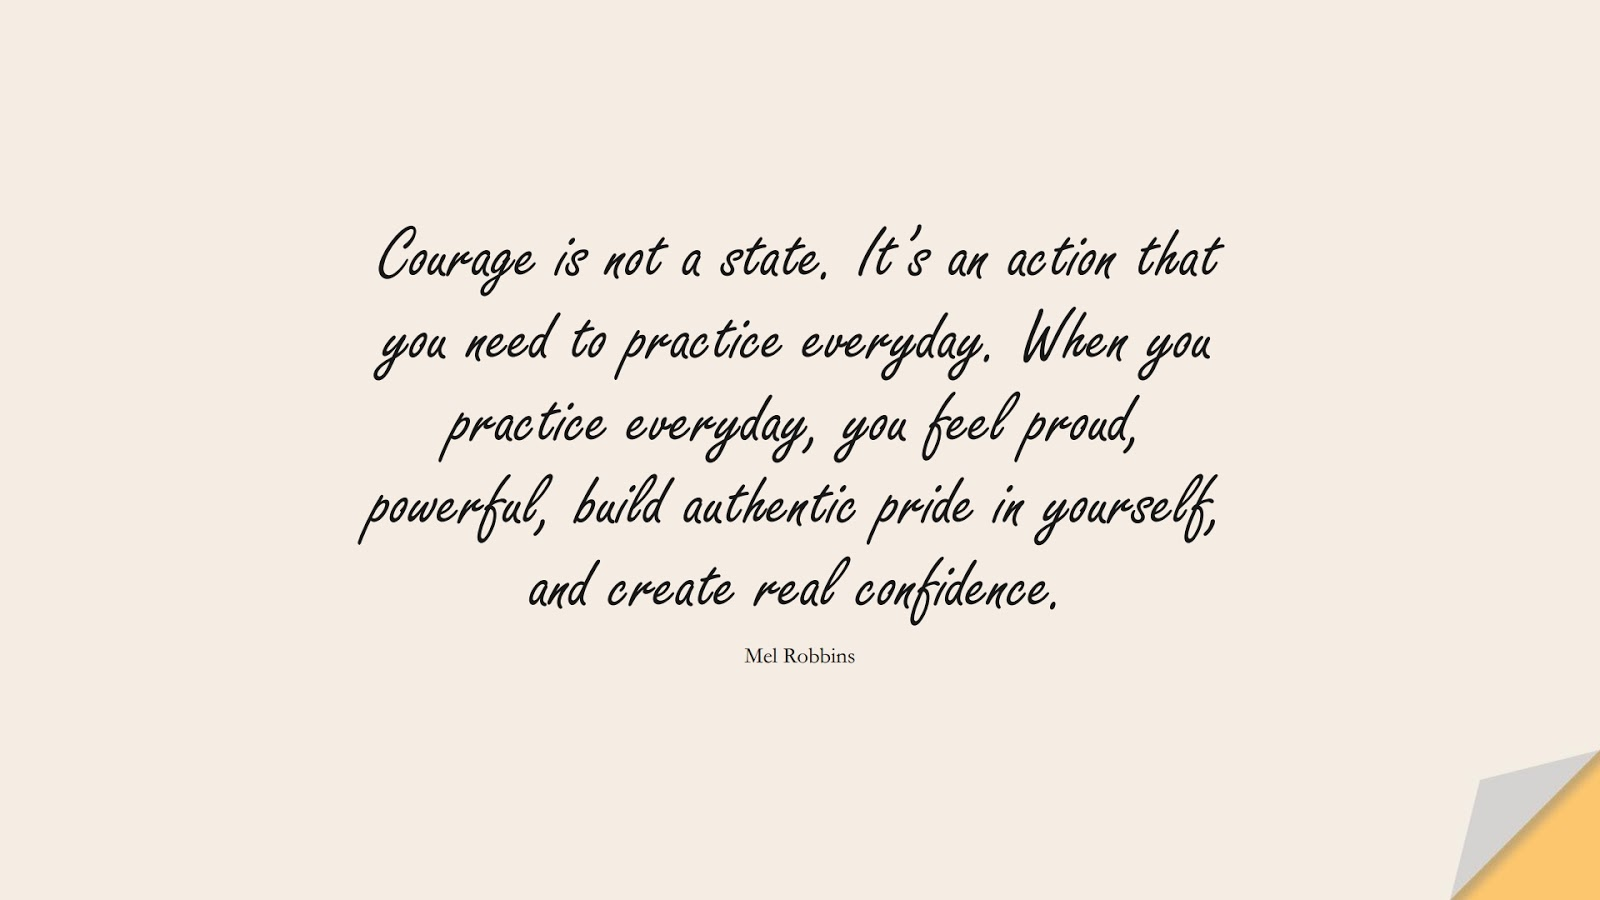 Courage is not a state. It's an action that you need to practice everyday. When you practice everyday, you feel proud, powerful, build authentic pride in yourself, and create real confidence. (Mel Robbins);  #EncouragingQuotes